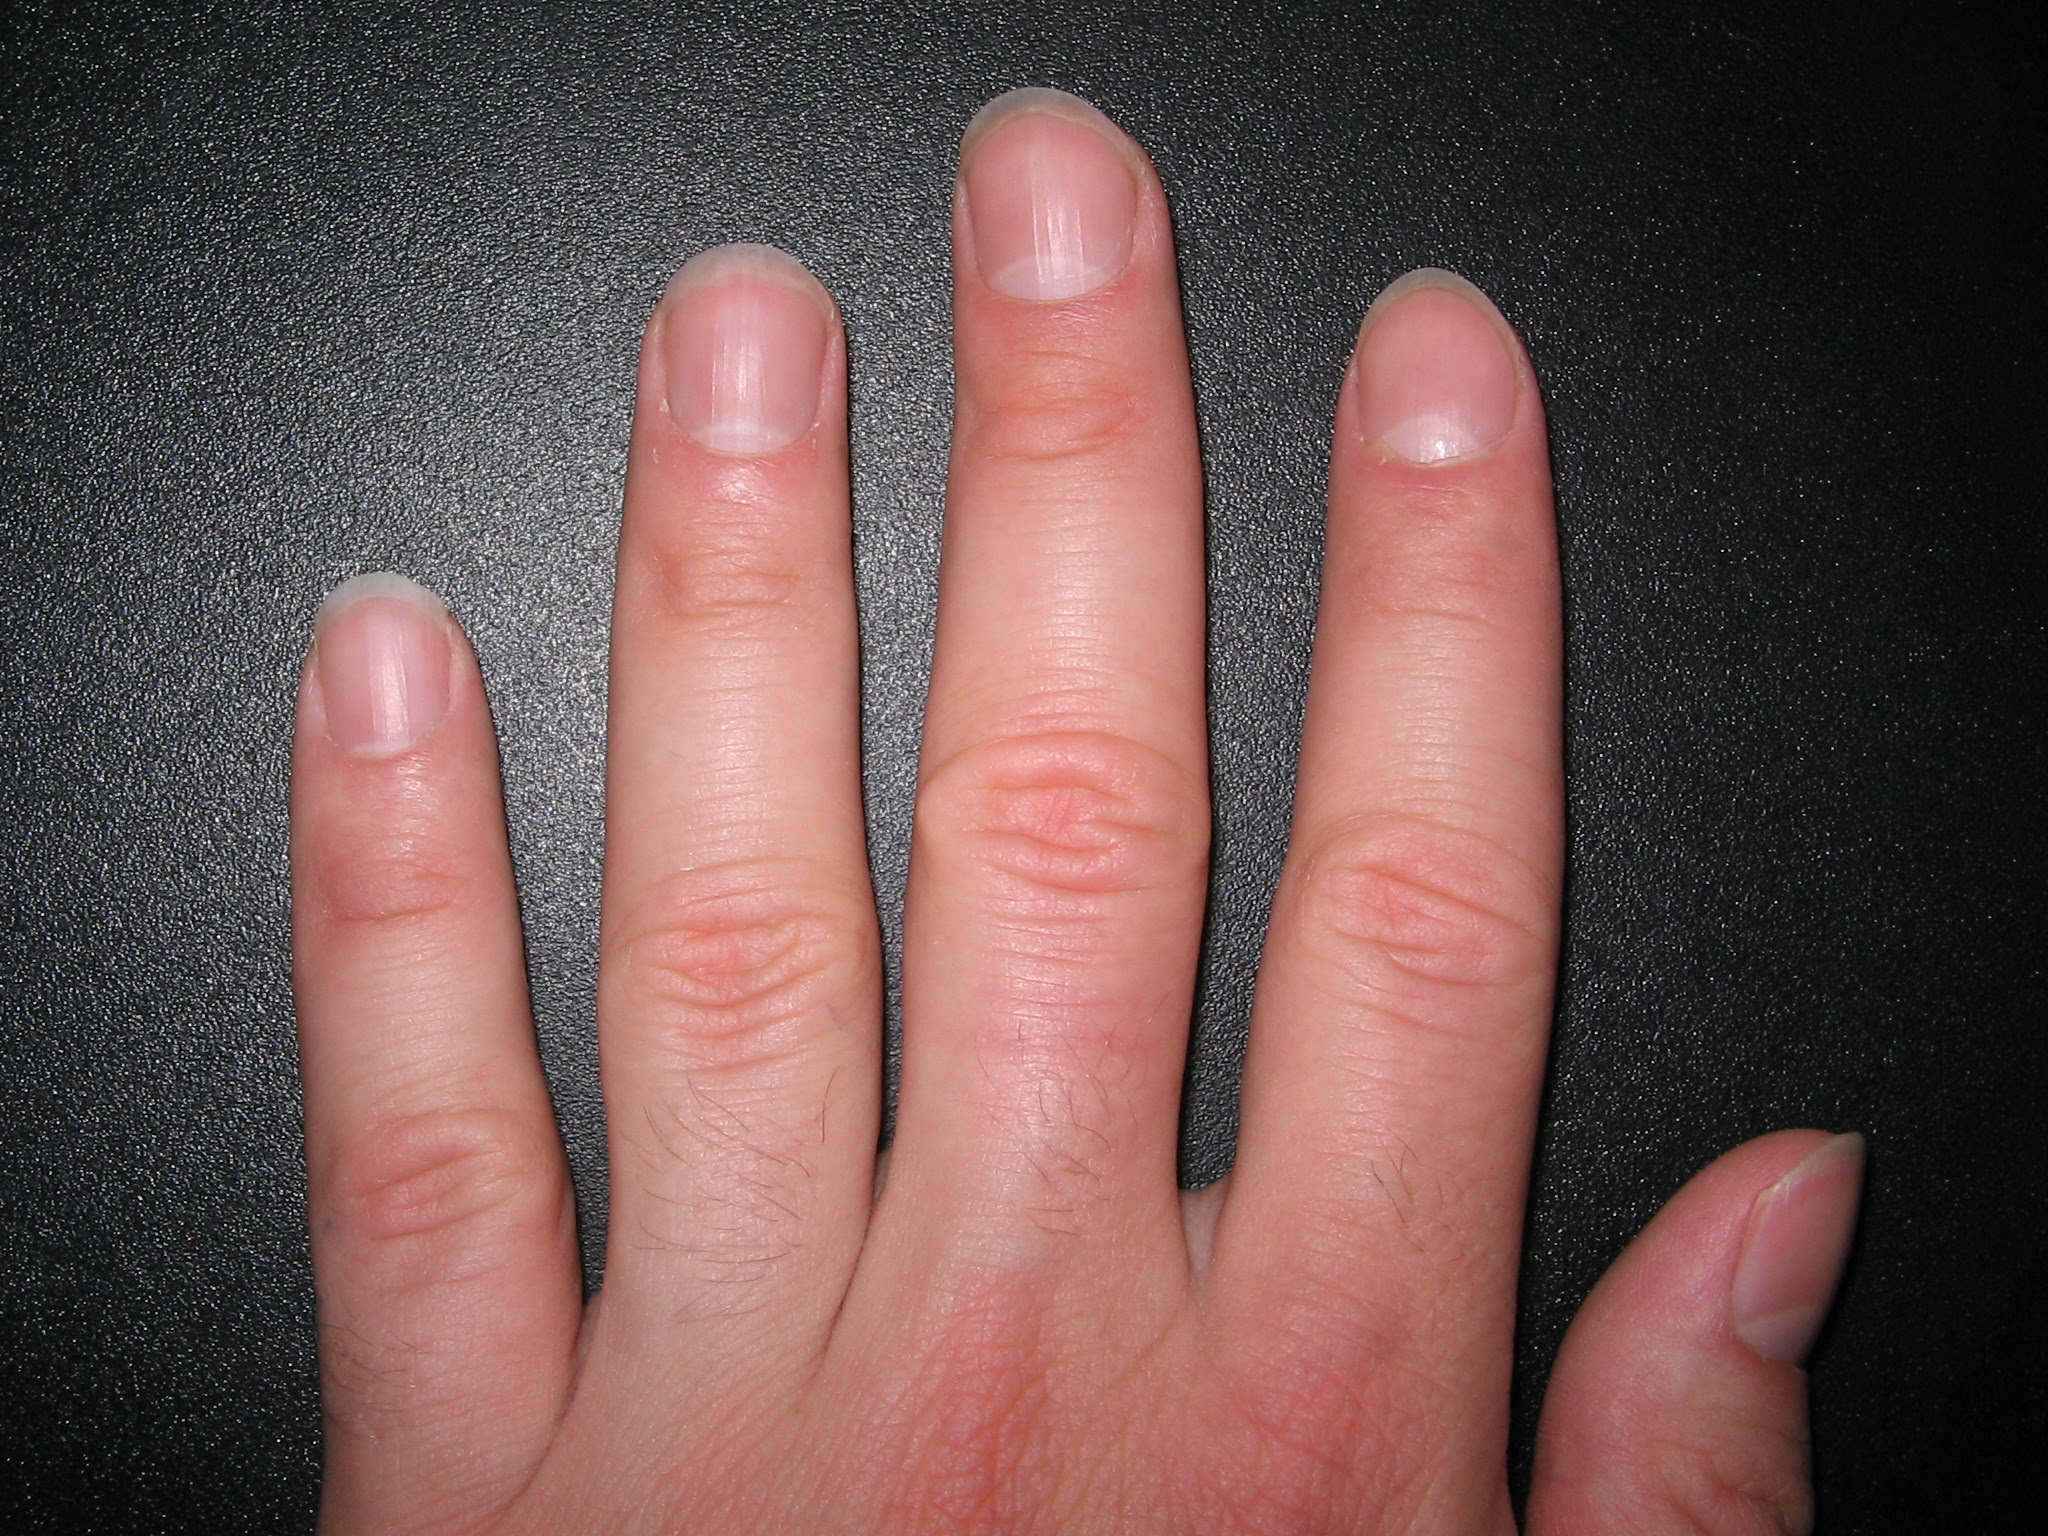 Ridges on fingernails vitamin deficiency - Awesome Nail